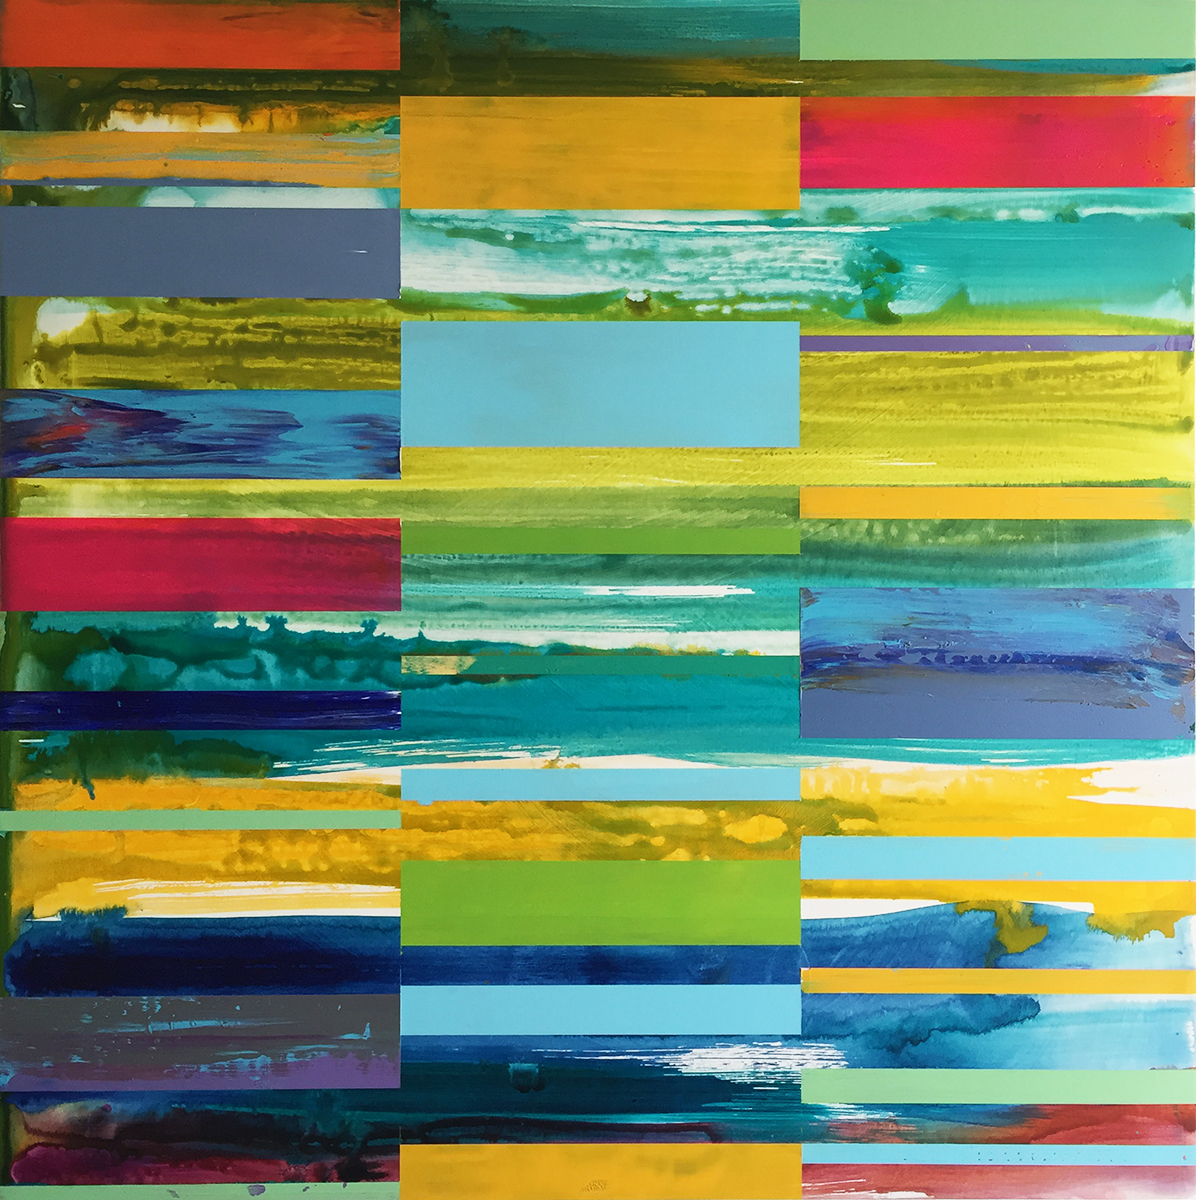 DNA Landscape_36 x 36 inches_June 2017_commissioned by Cynthia Colby for office in Toronto_1200.00 plus HST each_4 of 4_A